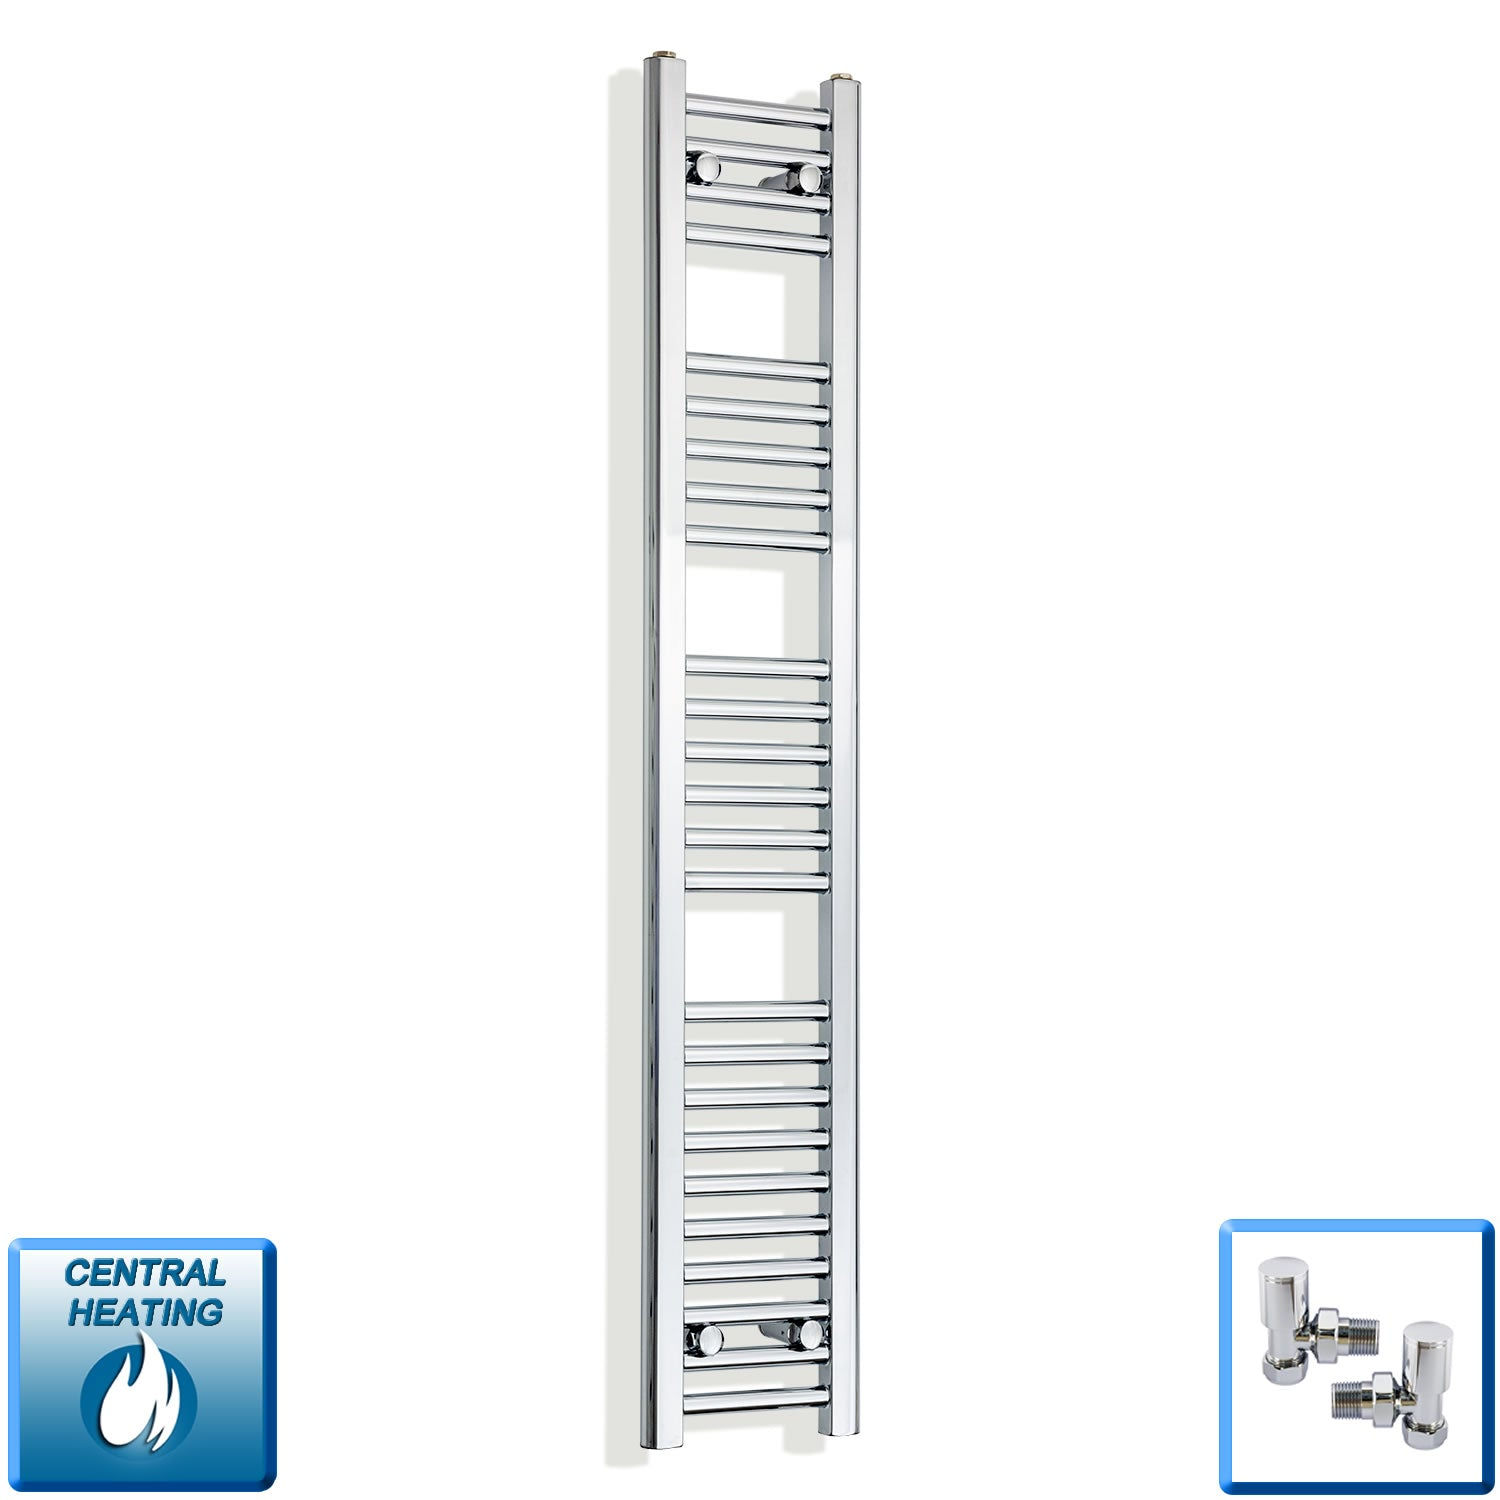 200mm Wide 1400mm High Chrome Towel Rail Radiator With Angled Valve